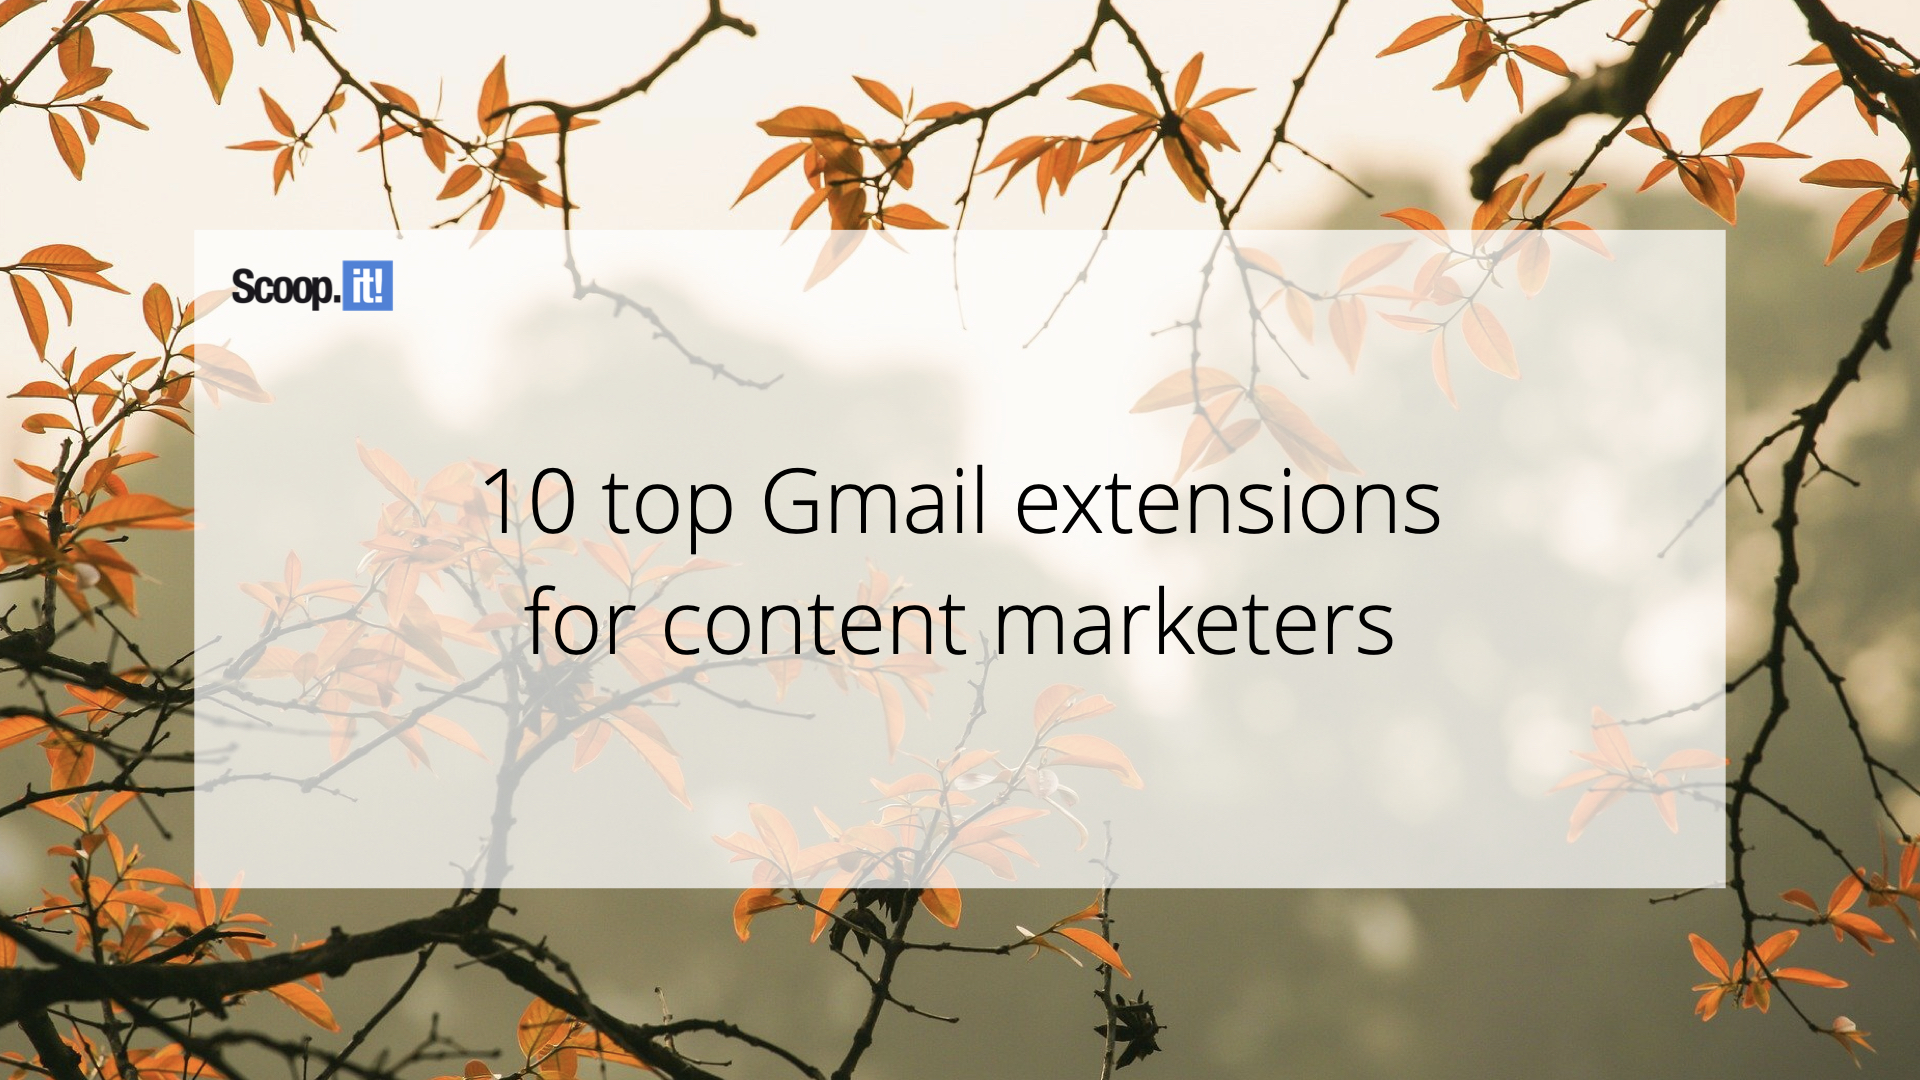 10 Top Gmail Extensions for Content Marketers